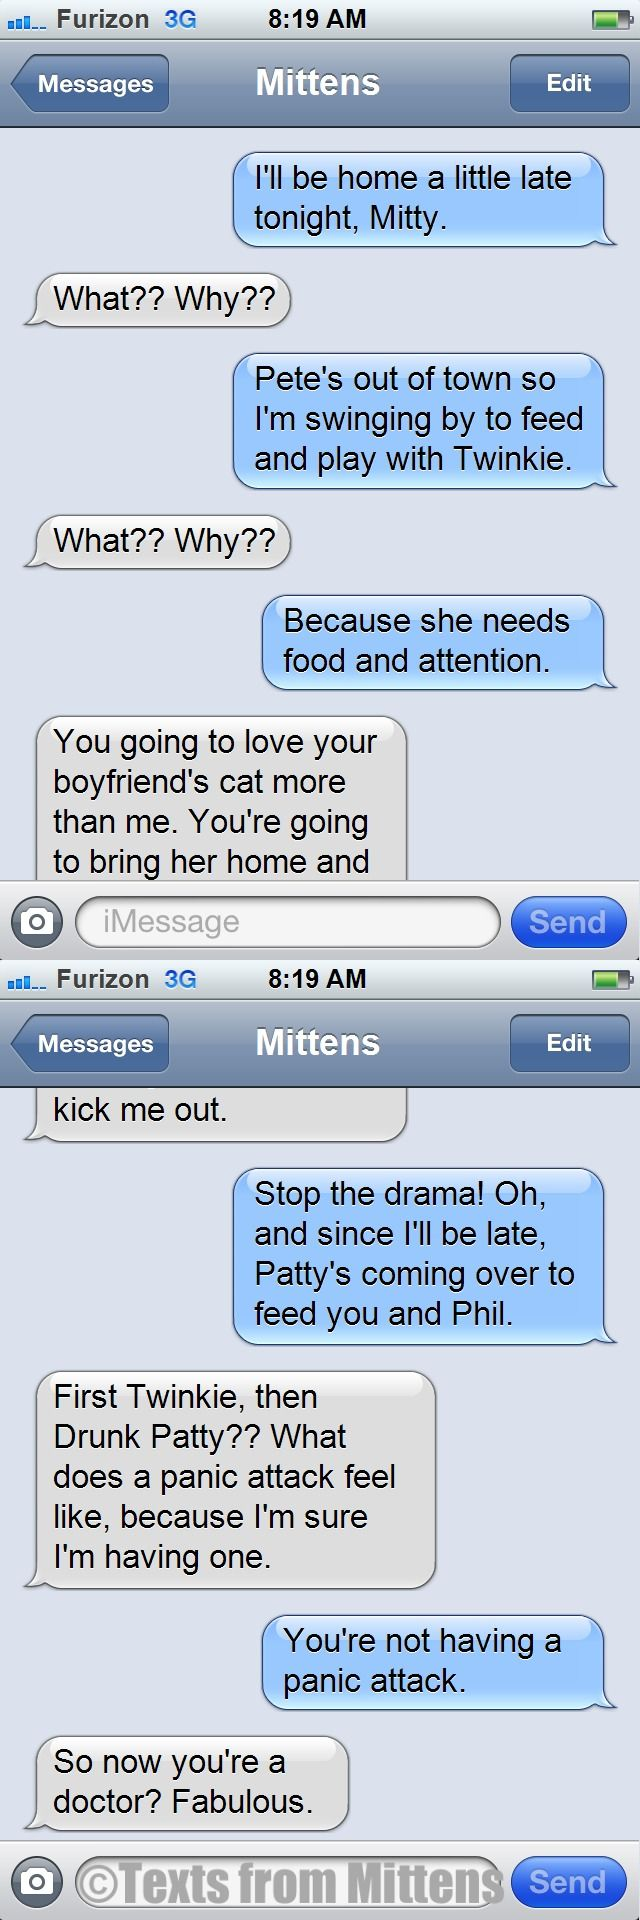 NEW Daily Texts from Mittens: The Panic Attack Edition  More Mittens: http://textsfrommittens.com/